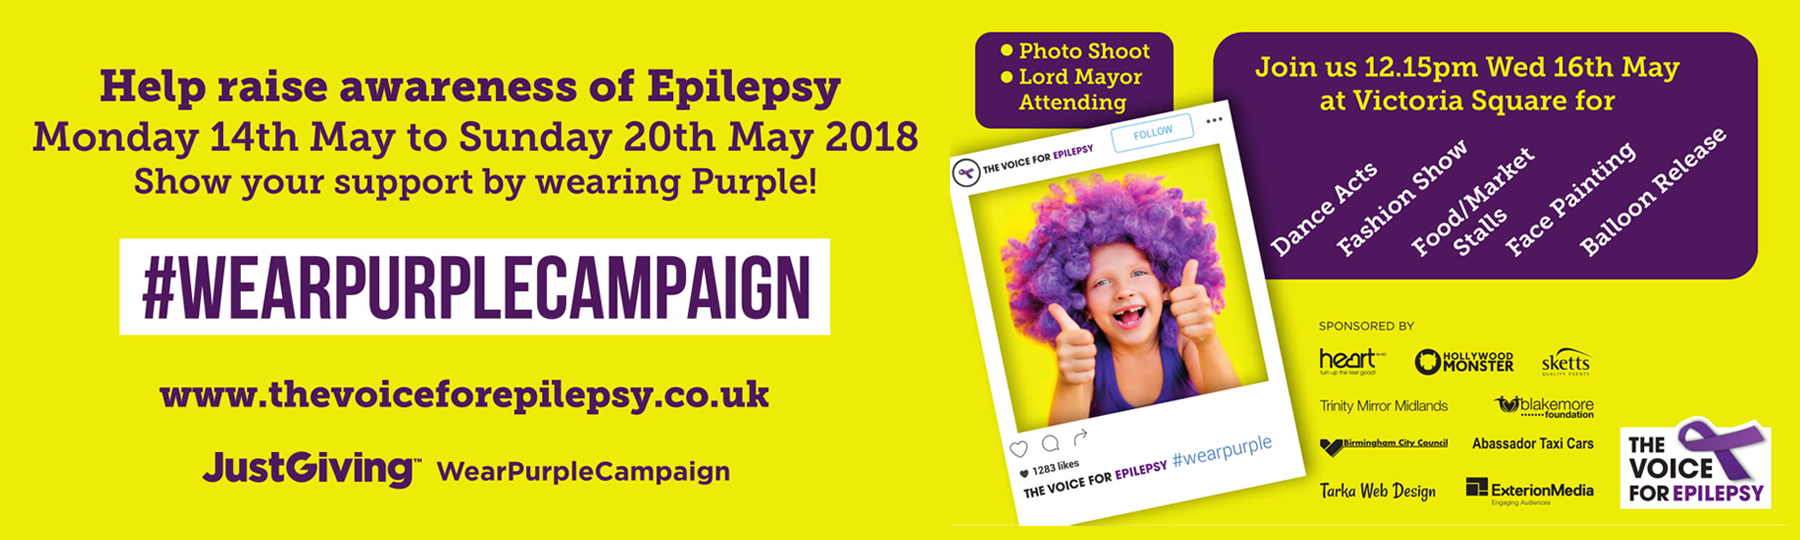 wear purple campaign epilepsy banner